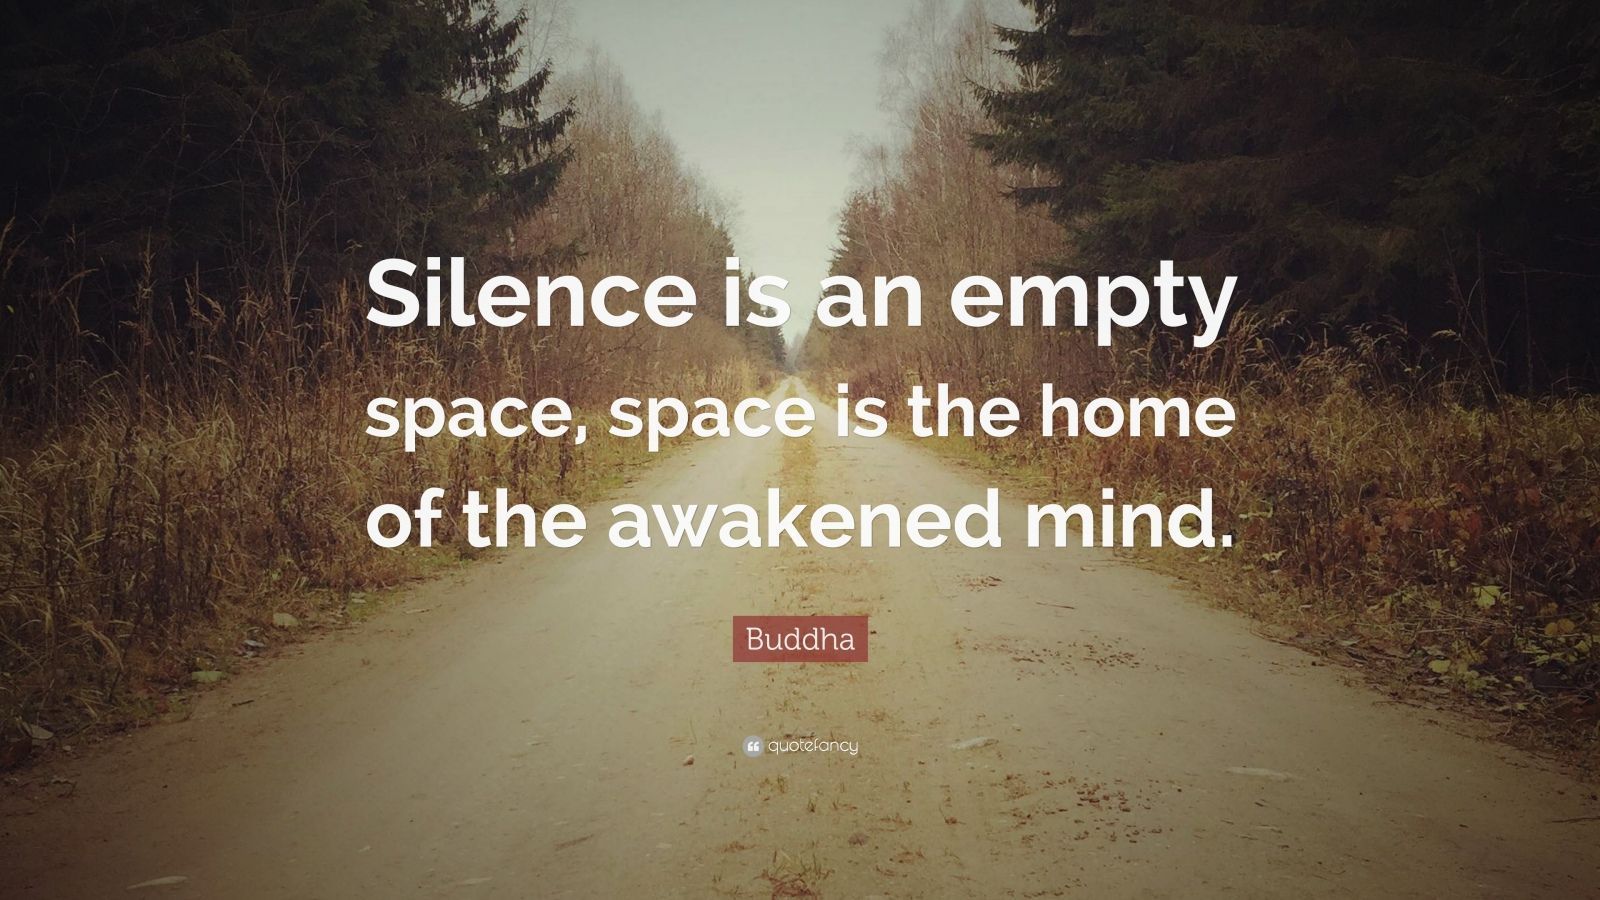 Buddha Quote Silence Is An Empty Space Space Is The Home Of The Awakened Mind Haha When You Got Ti Bonhoeffer Quotes Integrity Quotes Alan Watts Quotes